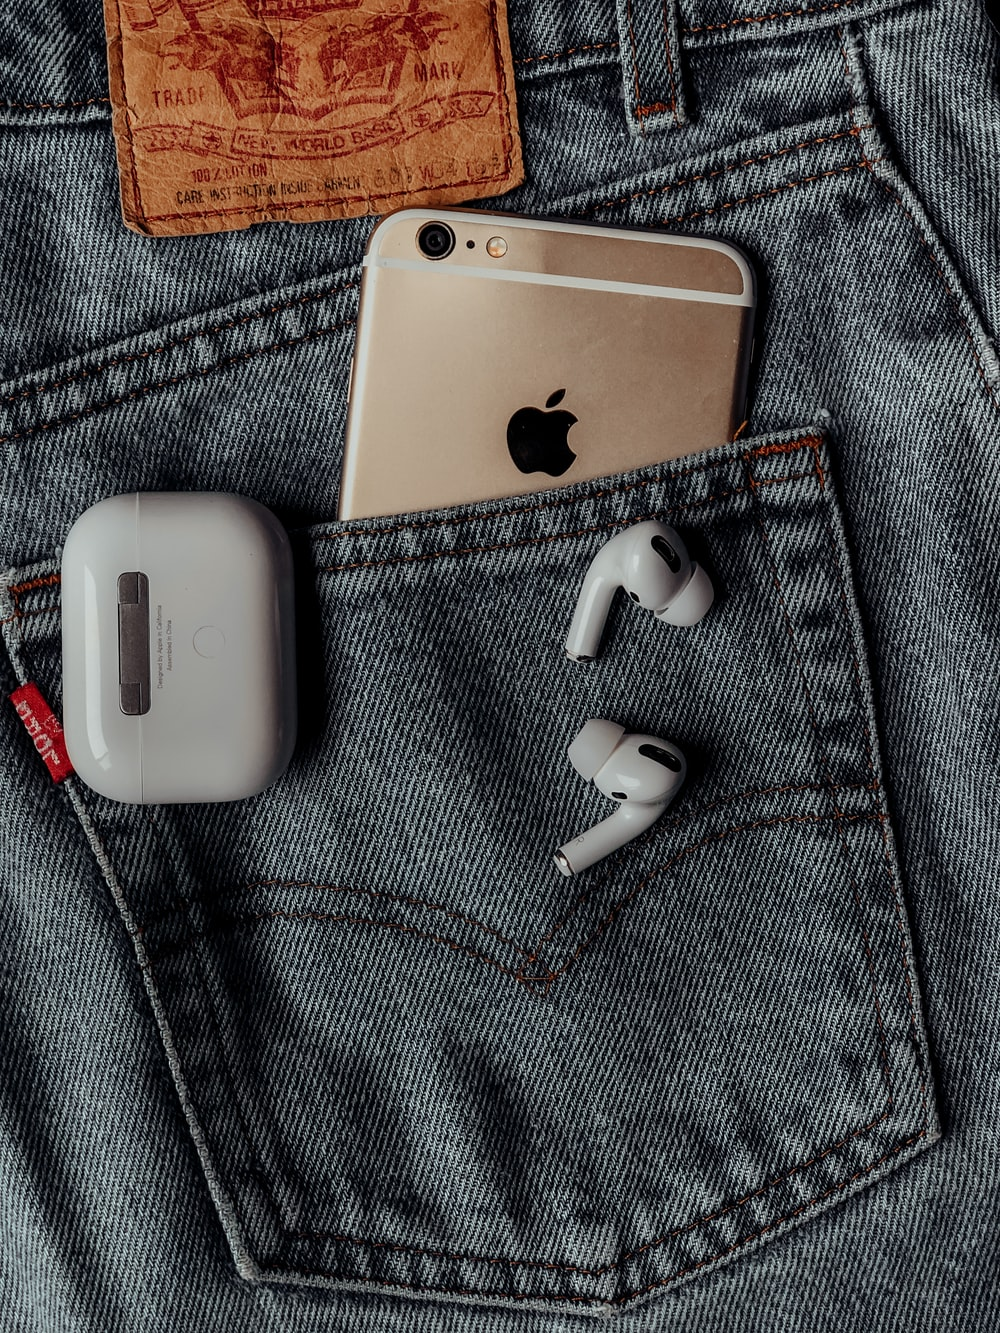 white apple airpods on silver iphone 6